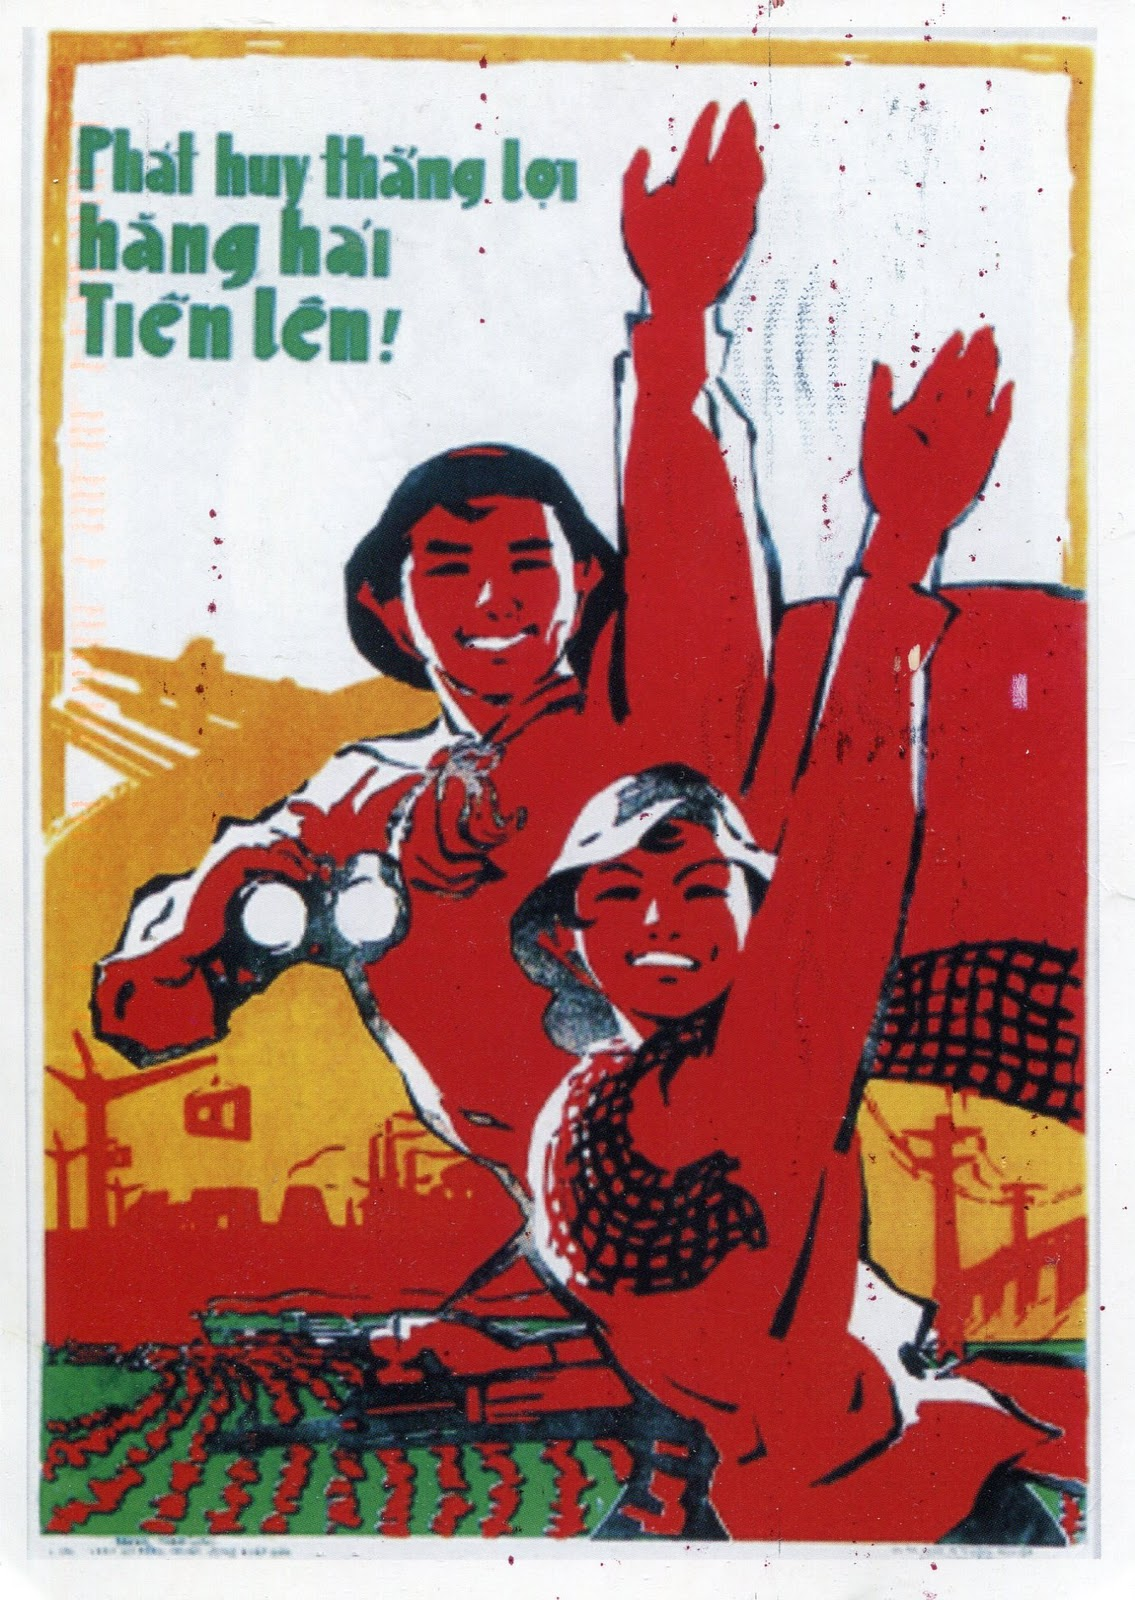 vietnam war propaganda During the vietnam conflict, anti-war sentiment grew at home and abroad the anti-war campaign was spread using a plethora of means, including song-writing, posters, marches.